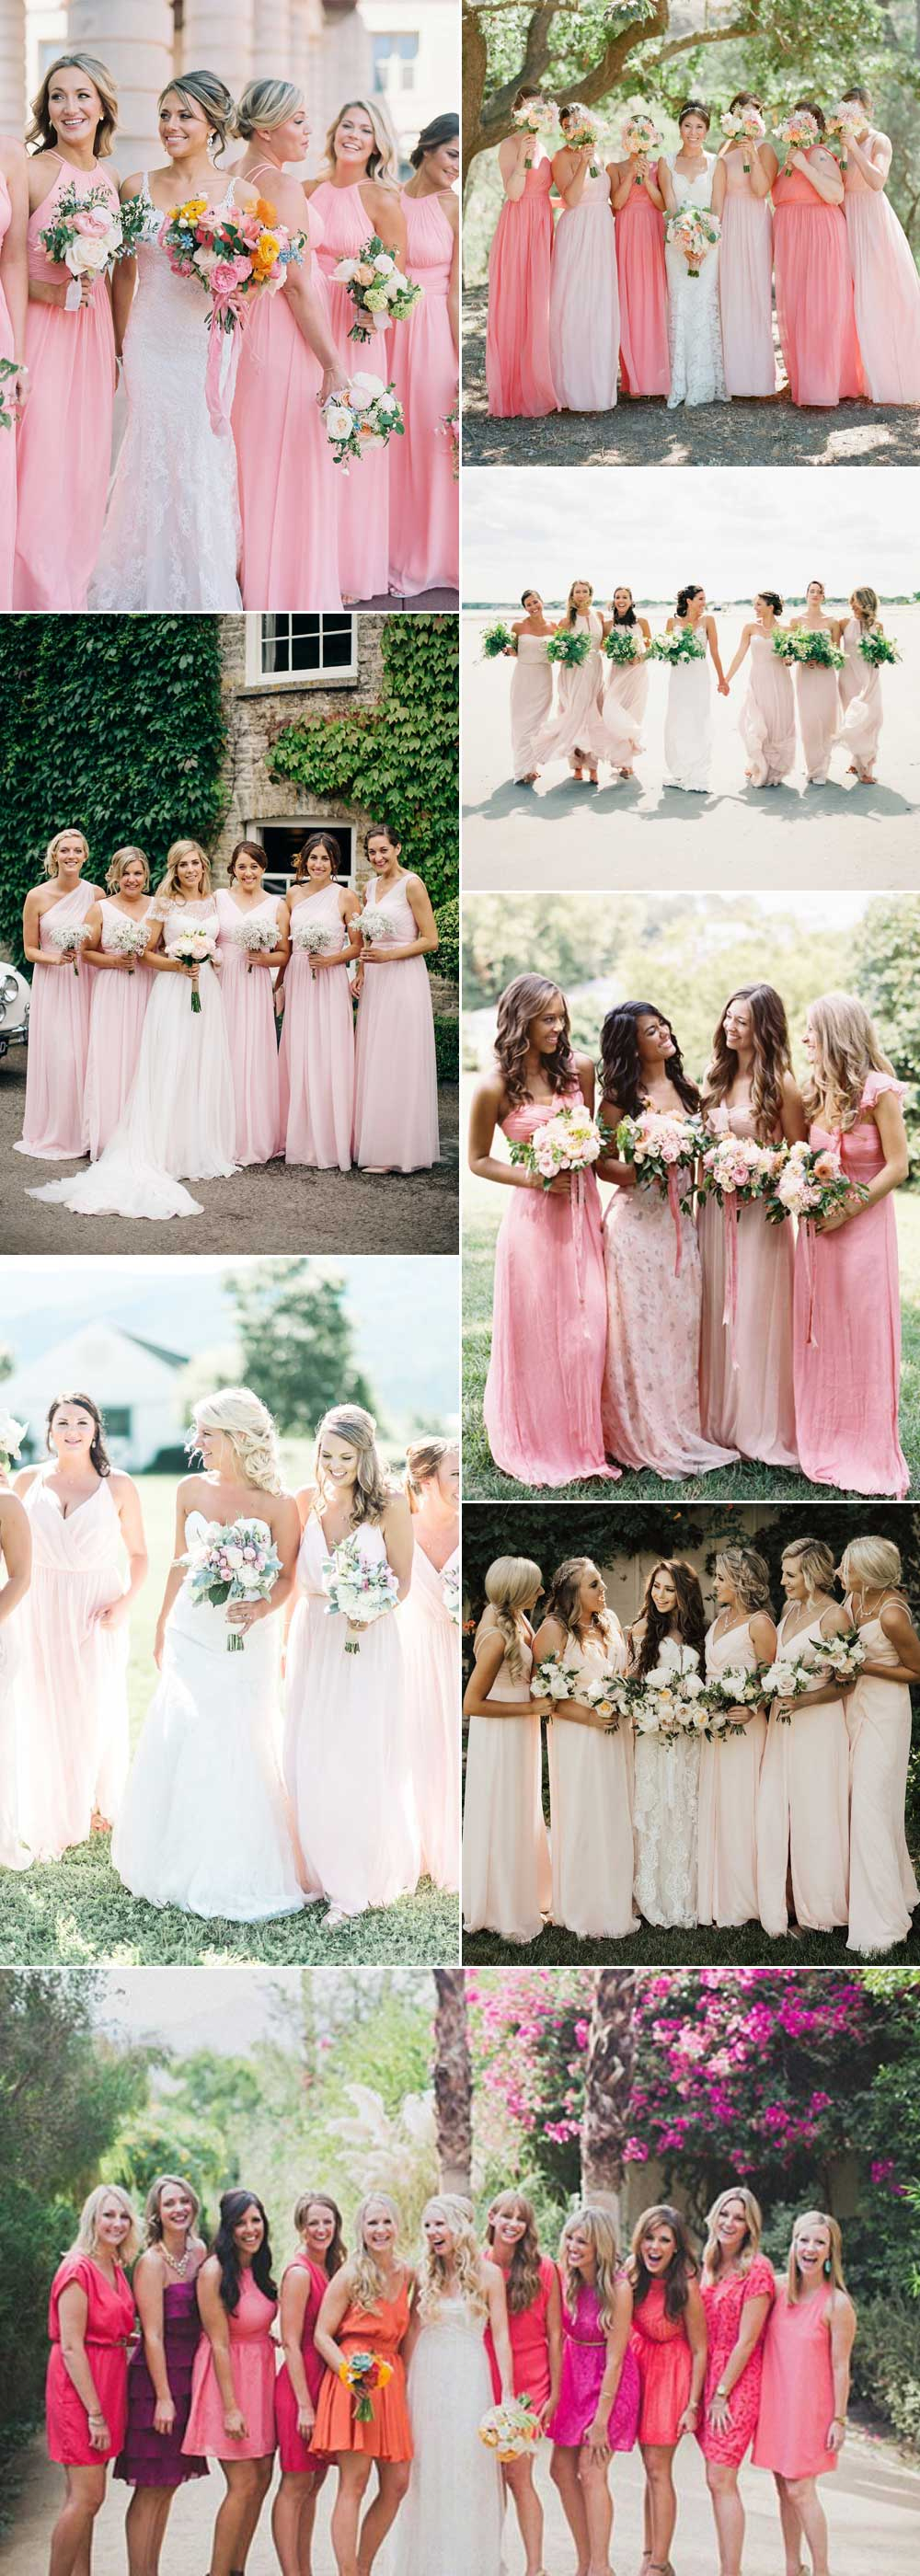 Bridesmaid dresses pink